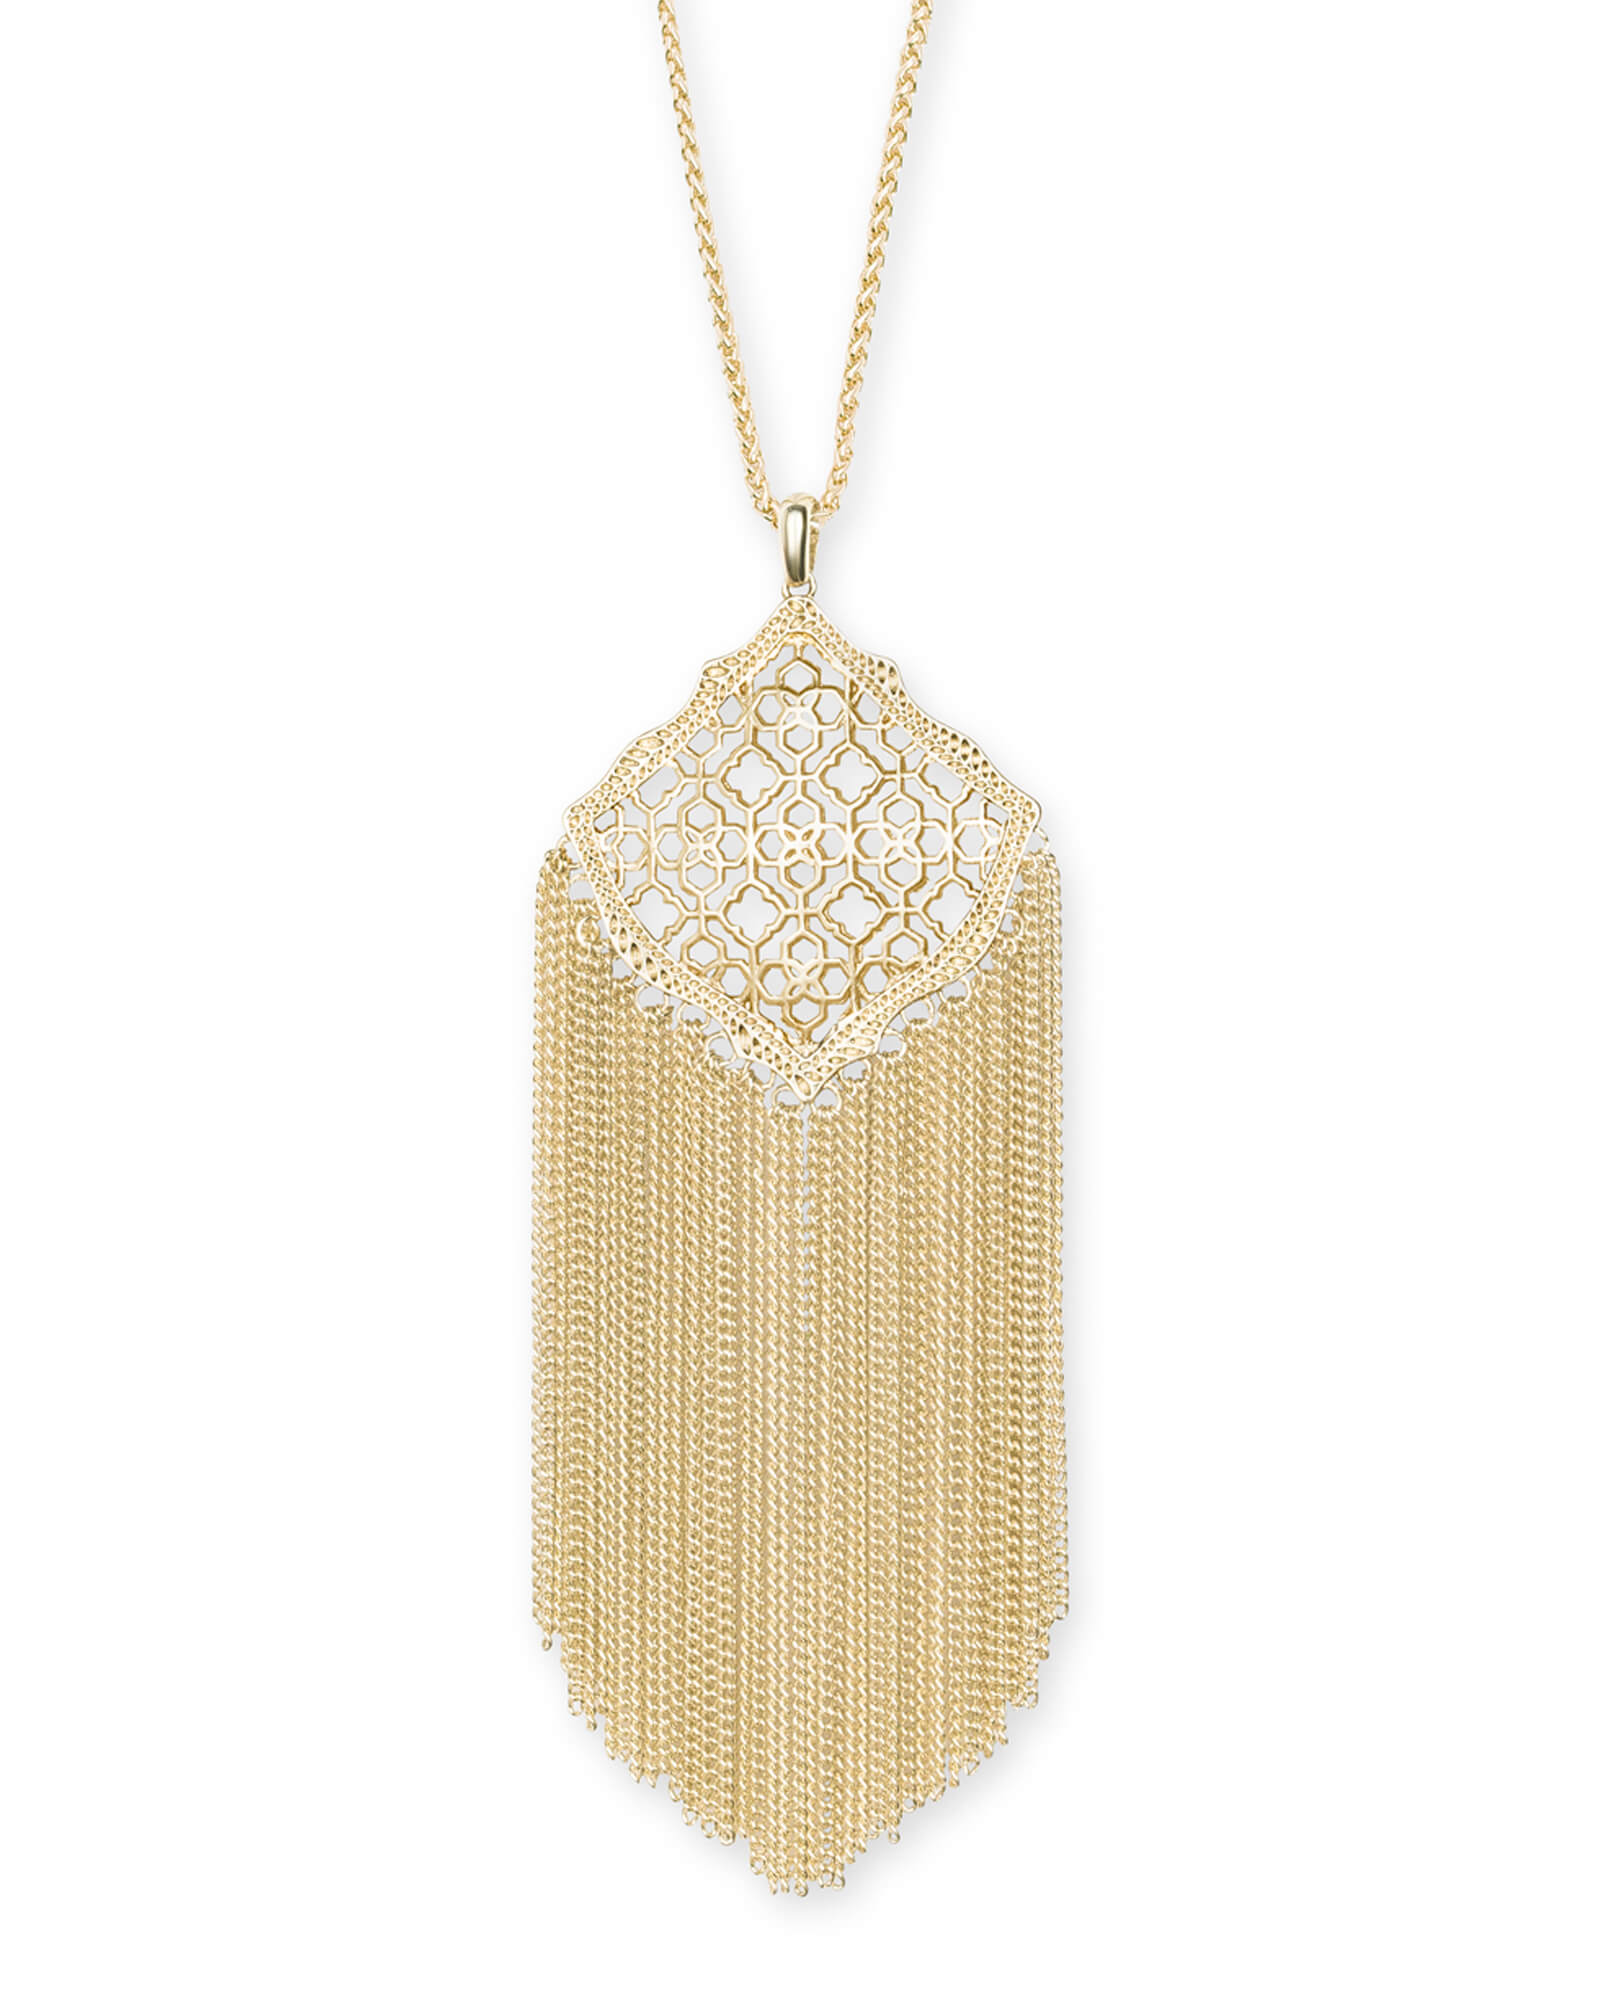 Kingston gold pendant necklace in gold filigree kendra scott kingston gold long pendant necklace in gold filigree mix aloadofball Gallery